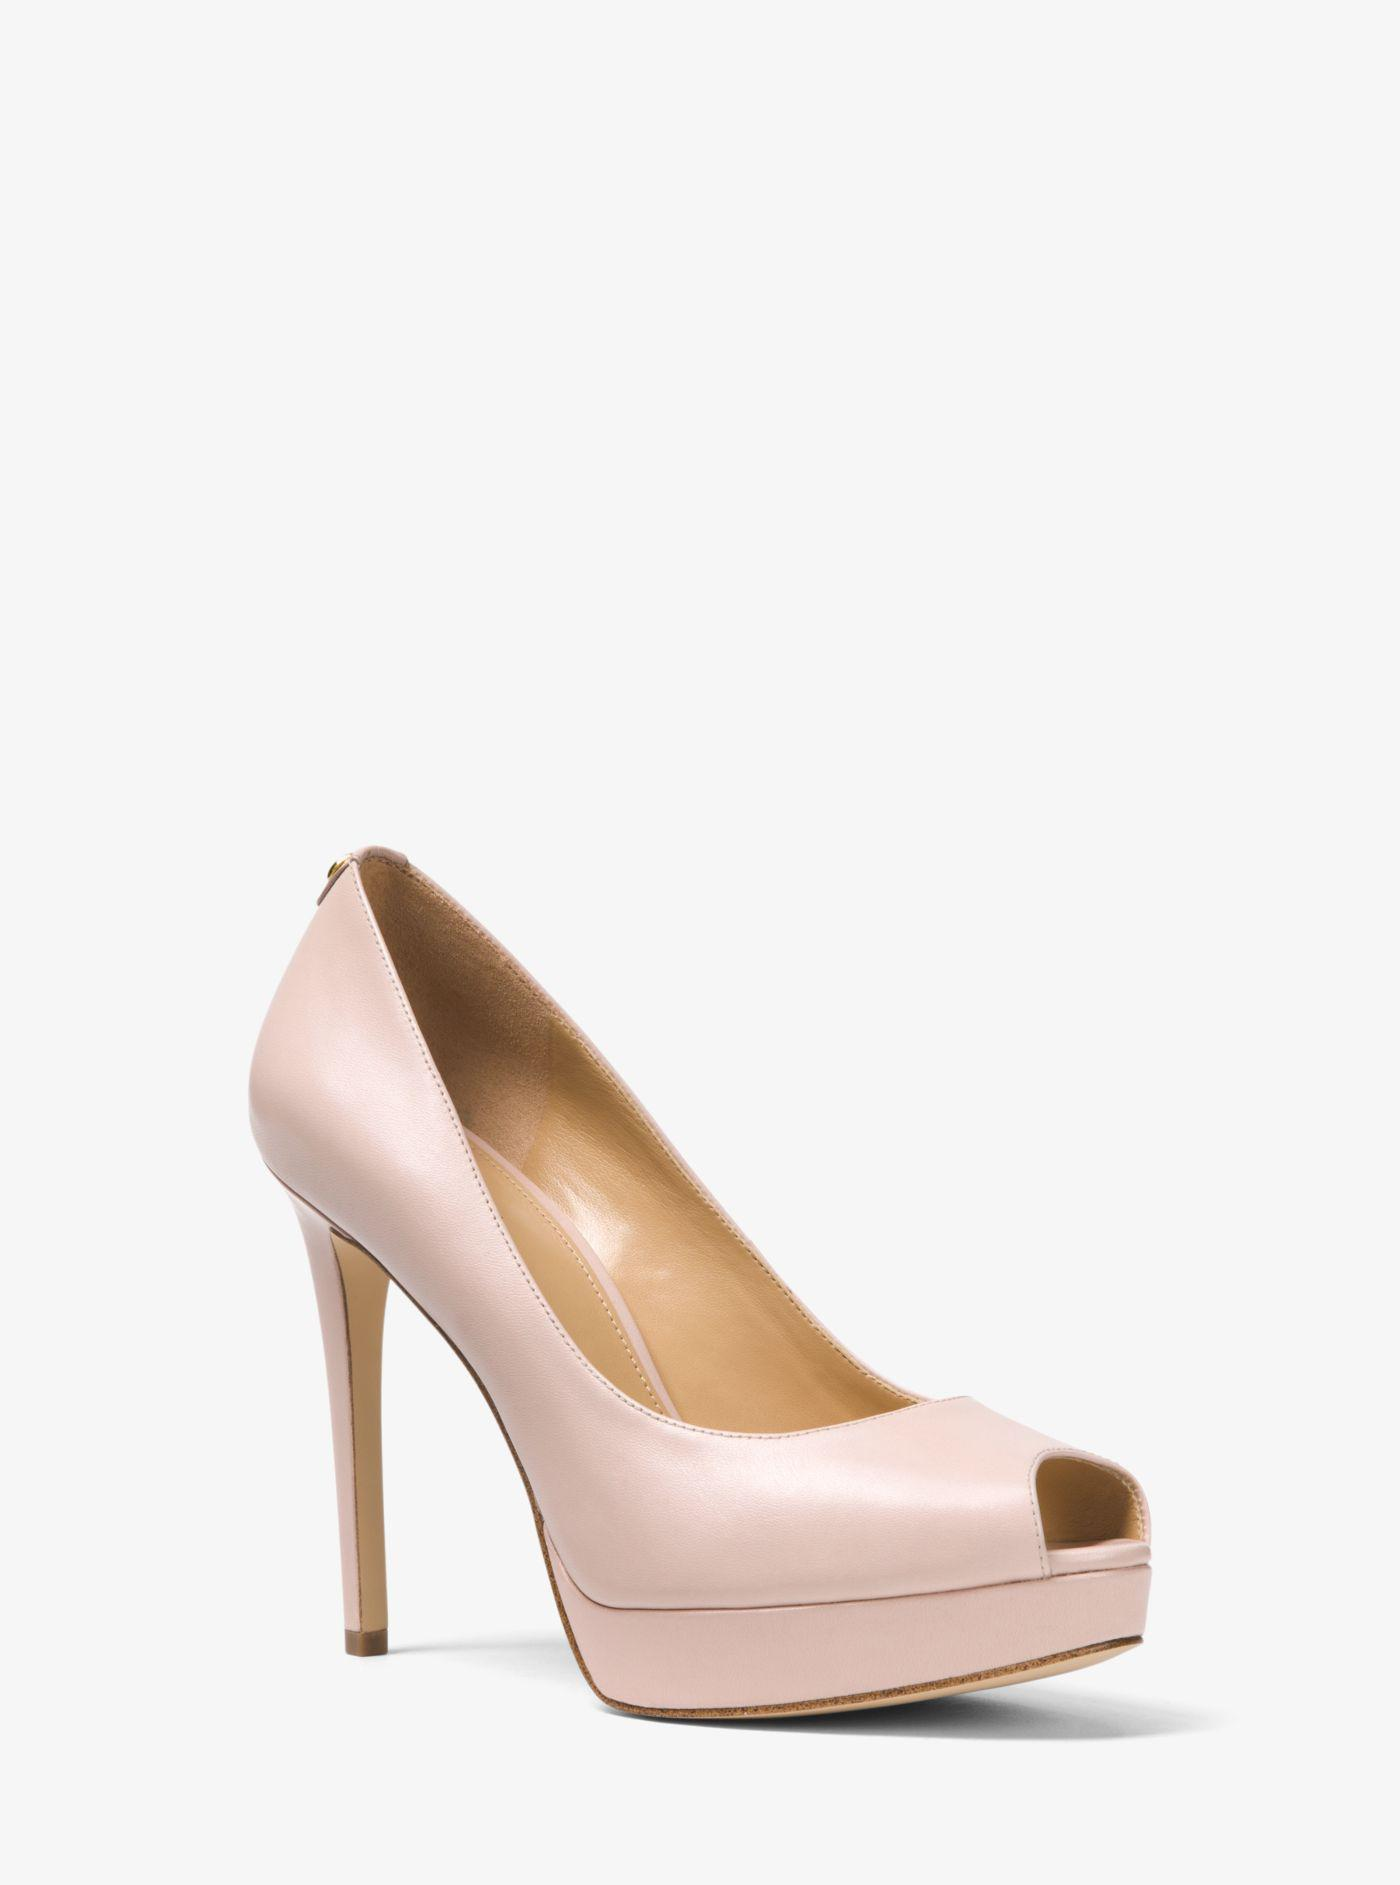 bc23ab8a484 Lyst - Michael Kors Erika Leather Peep-toe Pump in Pink